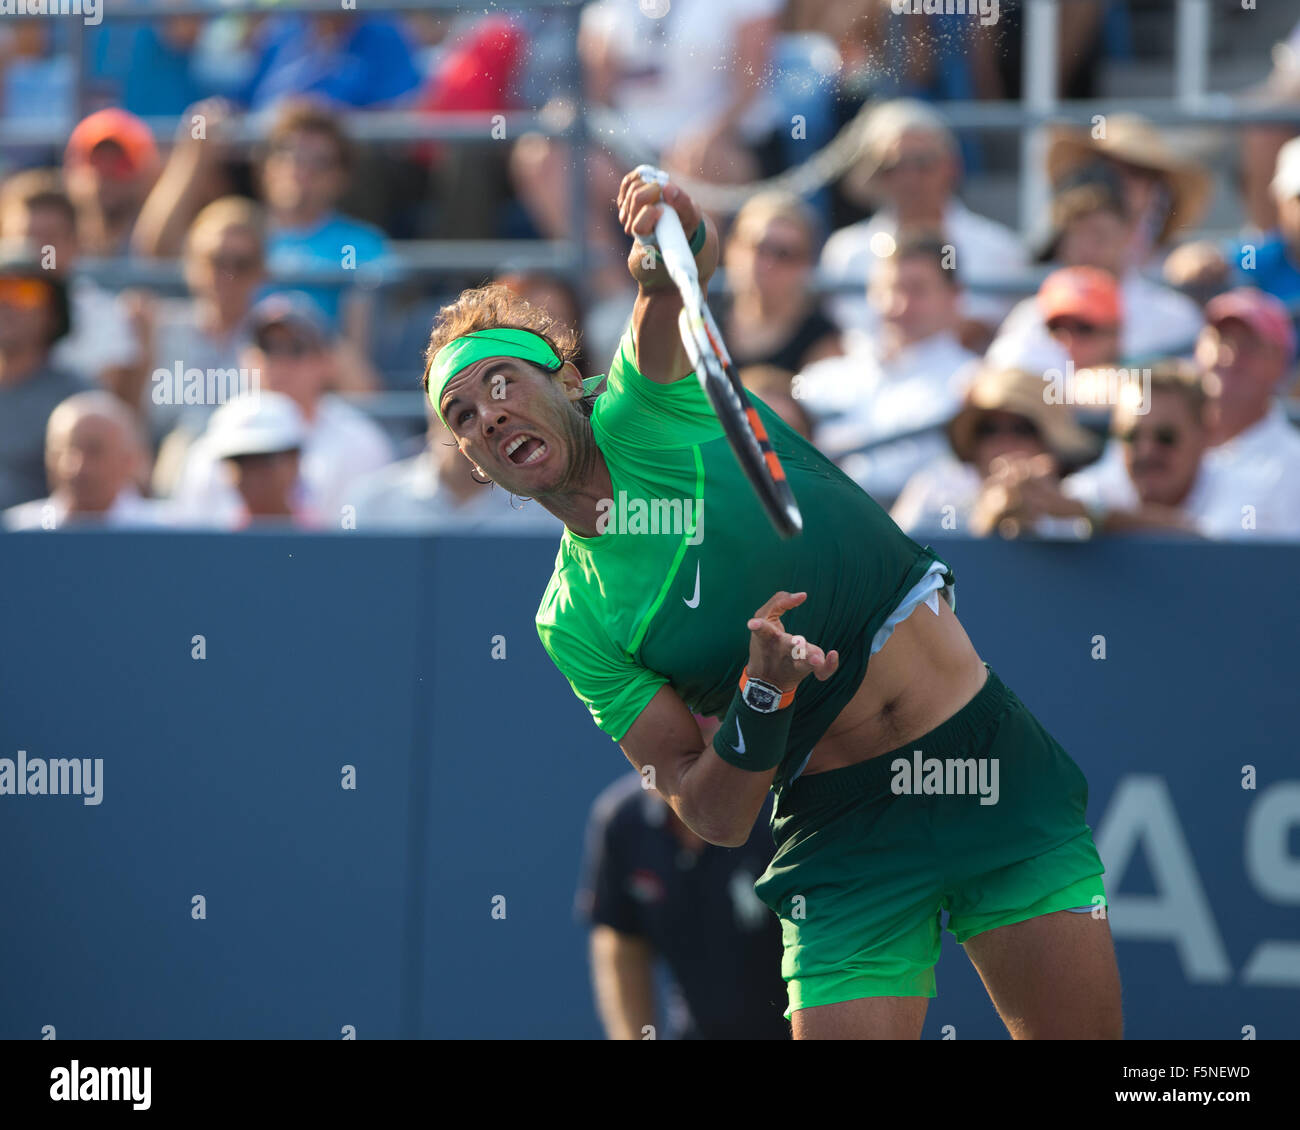 Rafael Nadal At Us Open 2015 High Resolution Stock Photography And Images Alamy